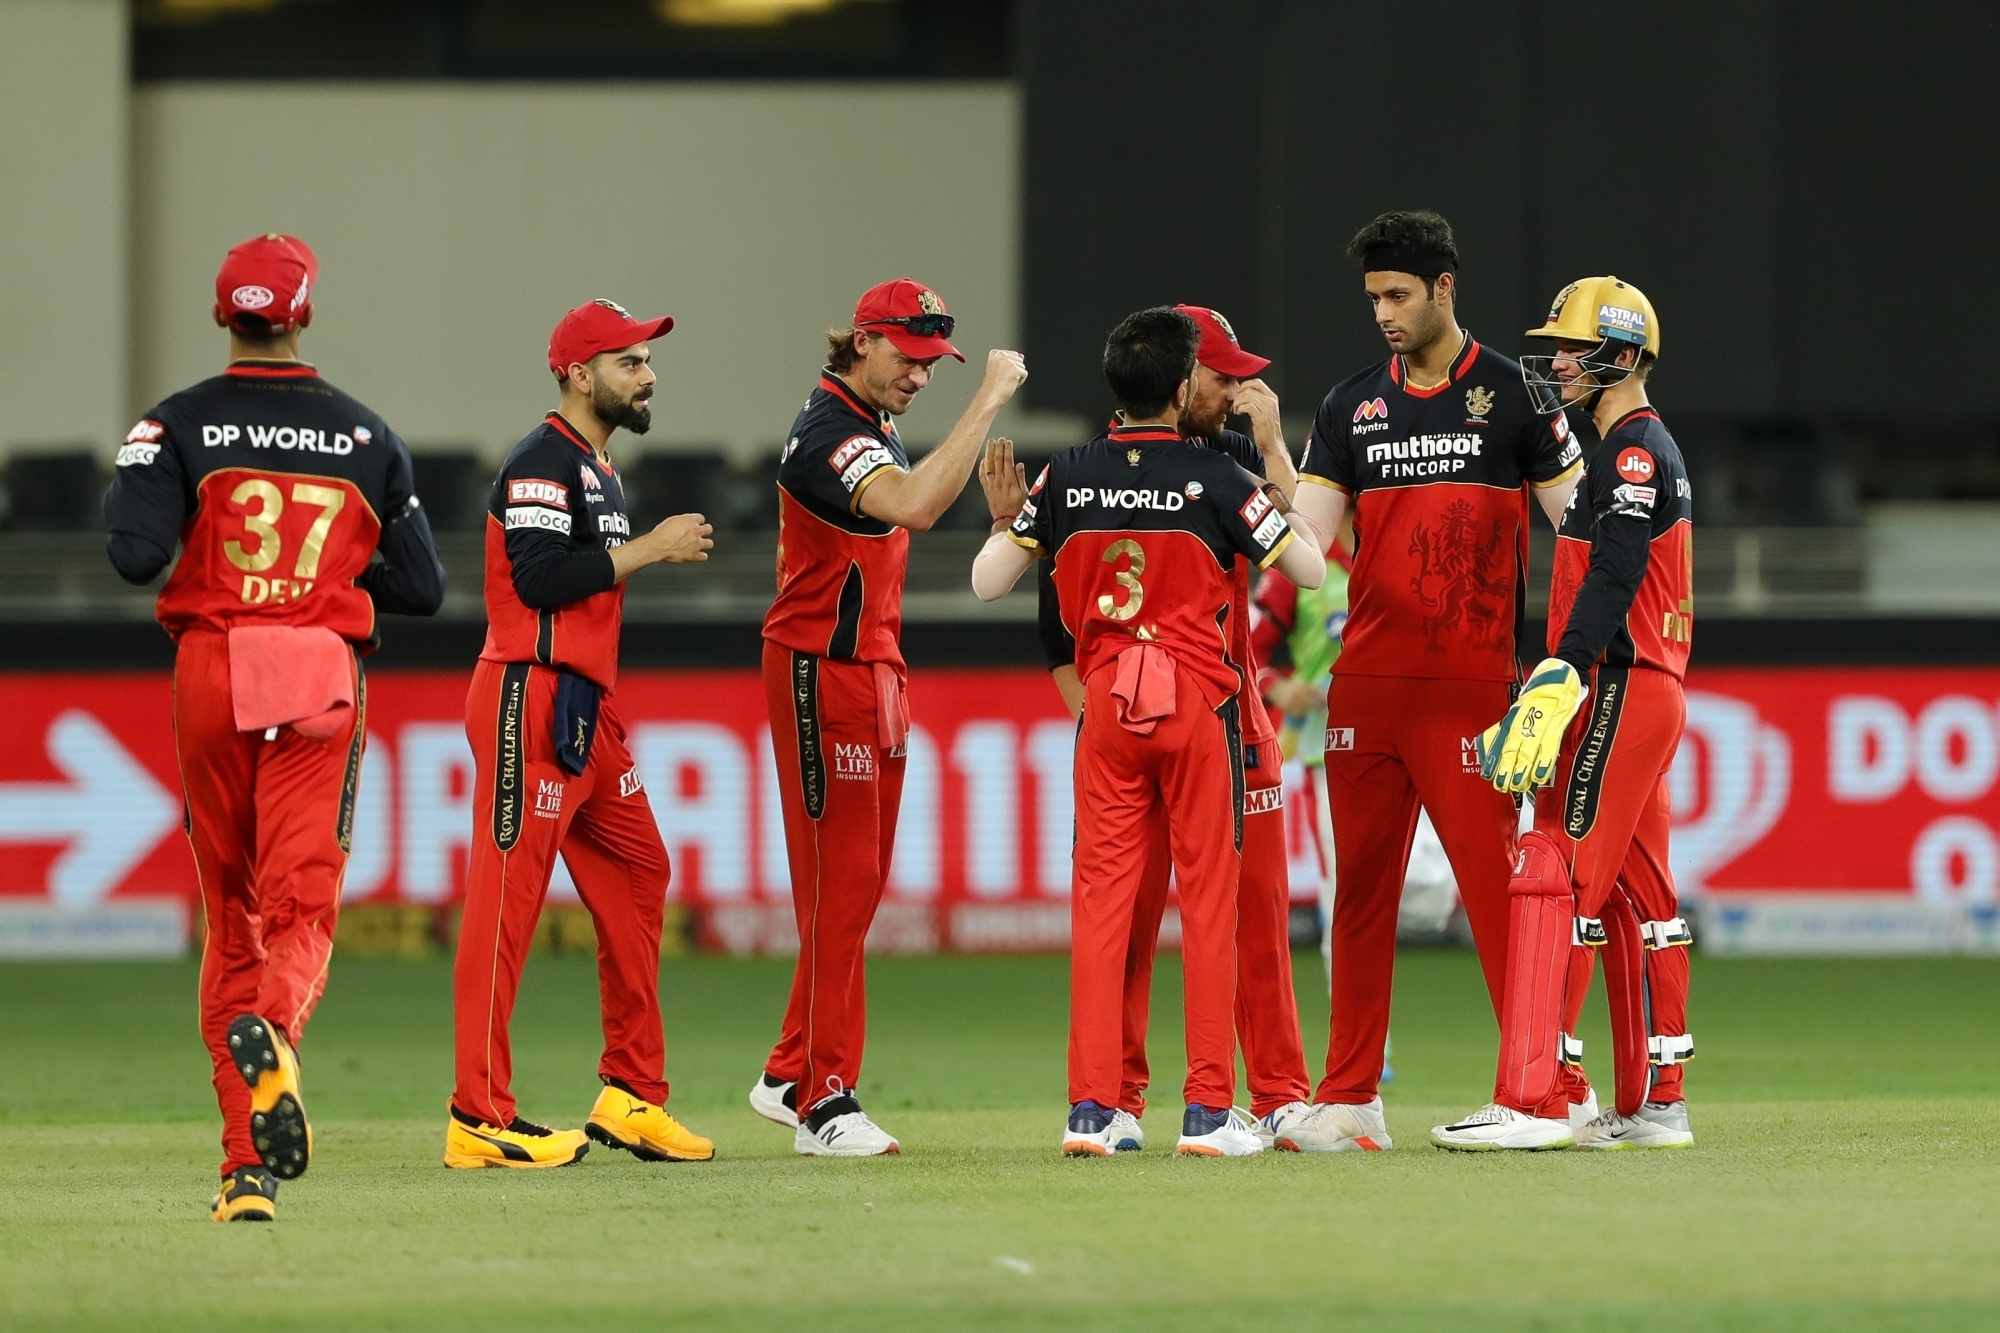 RCB finished fourth on the points table, losing to SRH in the Eliminator | BCCI/IPL